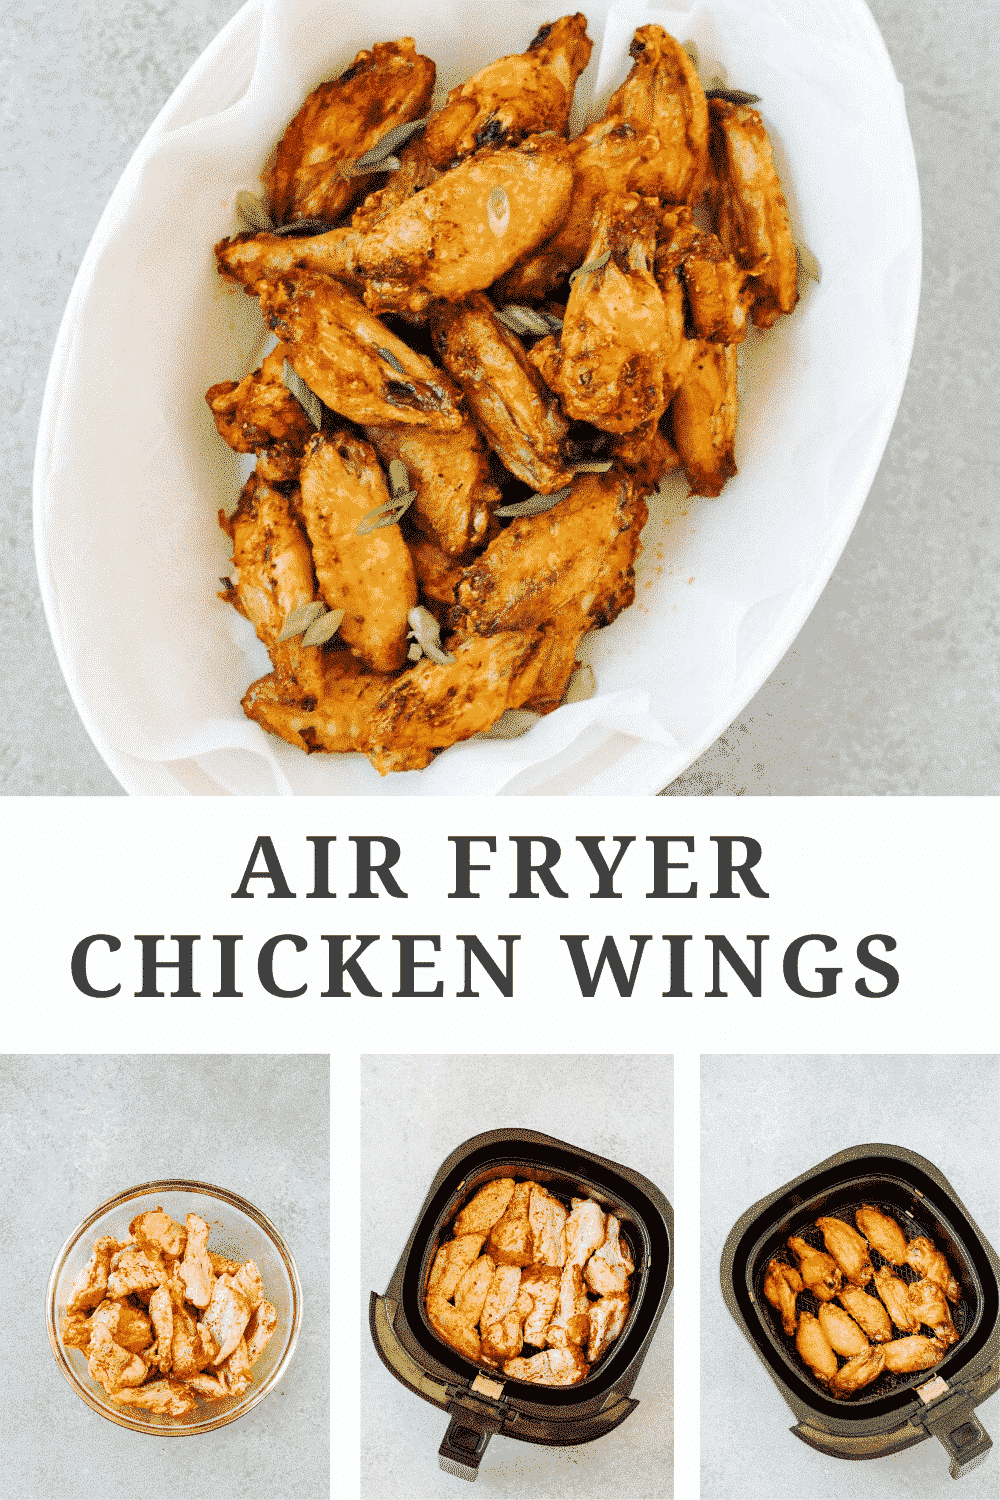 titled photo collage (and shown):Air Fryer Chicken Wings